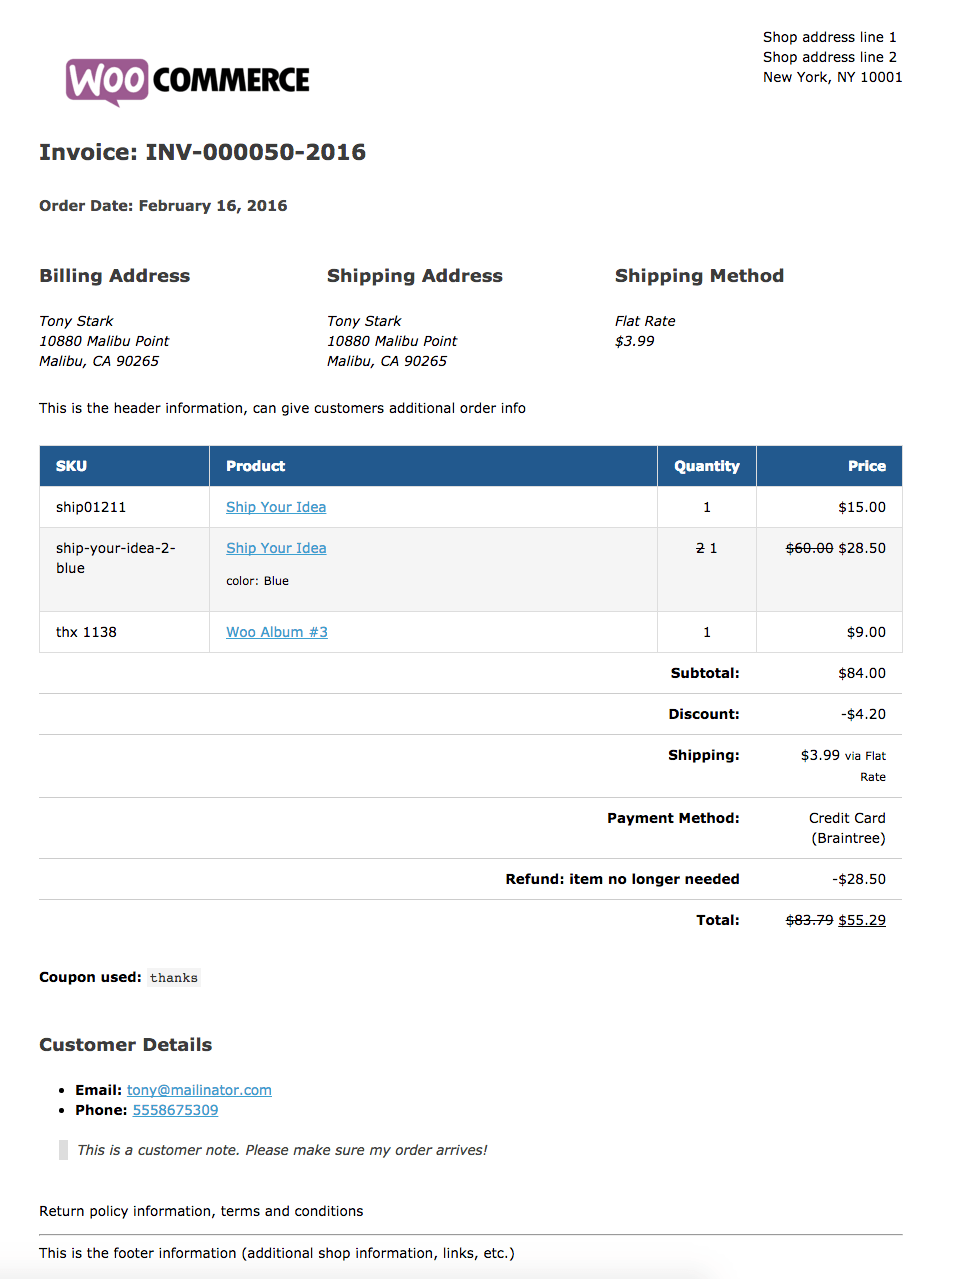 Aldiablosus  Surprising Print Invoices Amp Packing Lists  Woocommerce With Foxy View A Sample Invoice  With Lovely Receipt Paper Walmart Also National Rental Car Toll Receipts In Addition Online Receipts And Walmart Item Number On Receipt As Well As Tow Truck Receipt Additionally Read Receipt On Gmail From Woocommercecom With Aldiablosus  Foxy Print Invoices Amp Packing Lists  Woocommerce With Lovely View A Sample Invoice  And Surprising Receipt Paper Walmart Also National Rental Car Toll Receipts In Addition Online Receipts From Woocommercecom